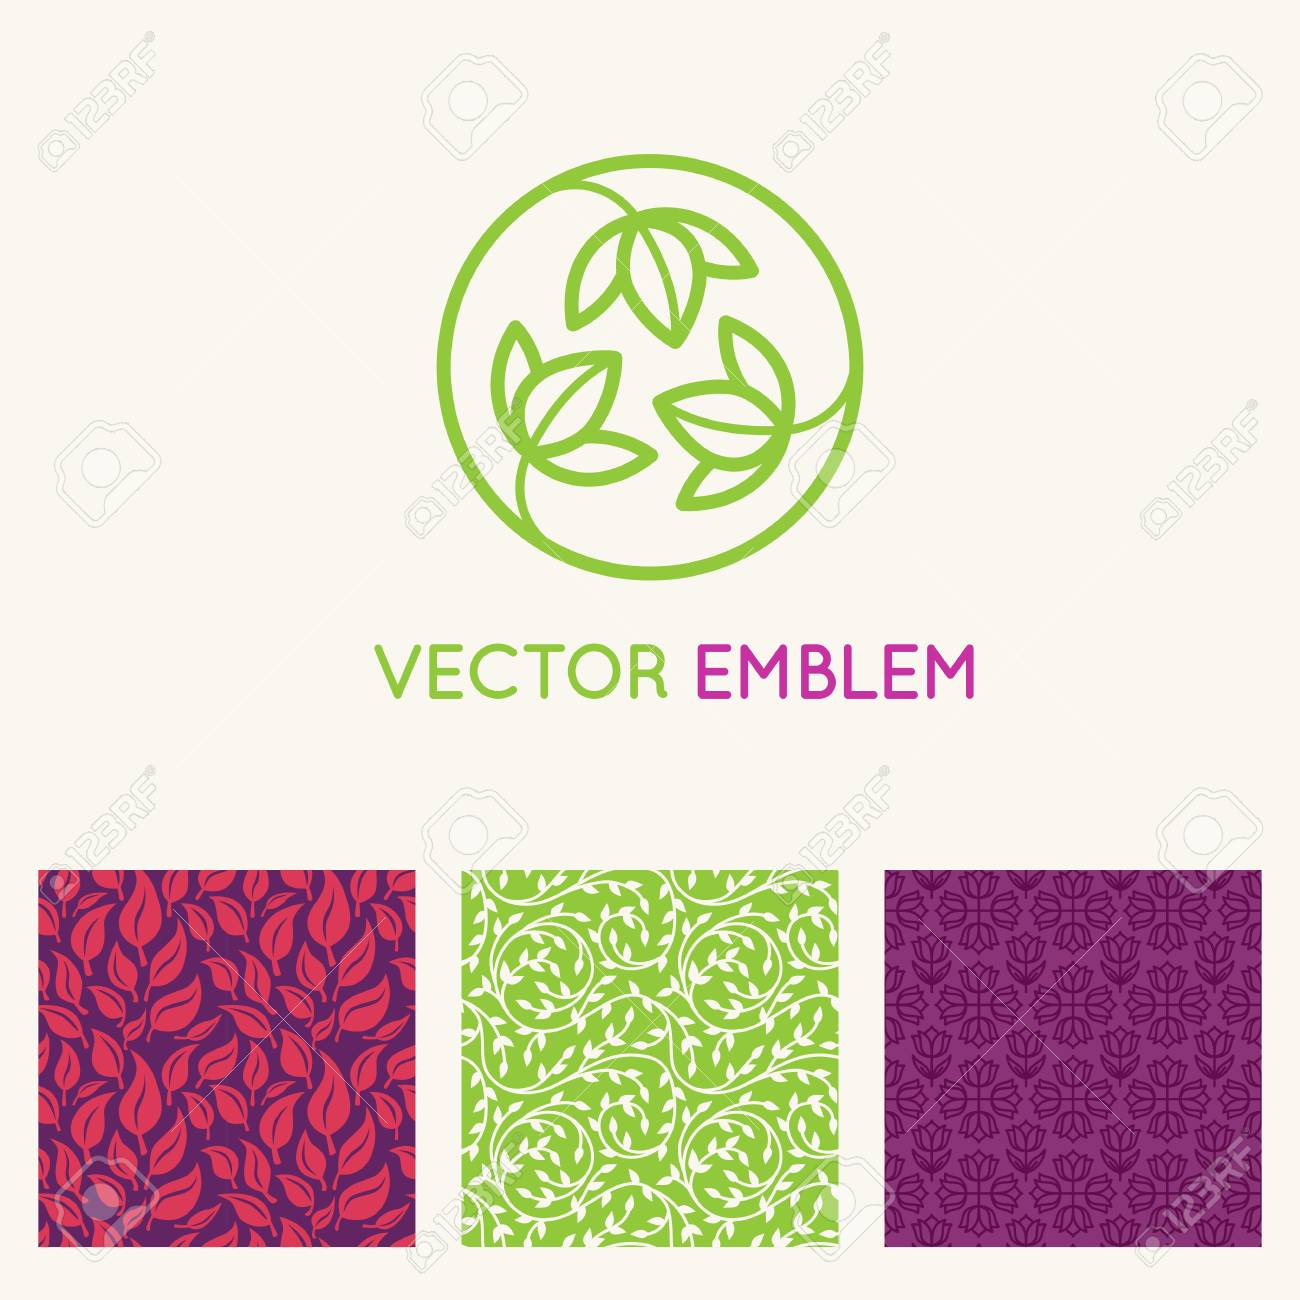 Vector Set Of Design Templates, Seamless Patterns And Backgrounds ...